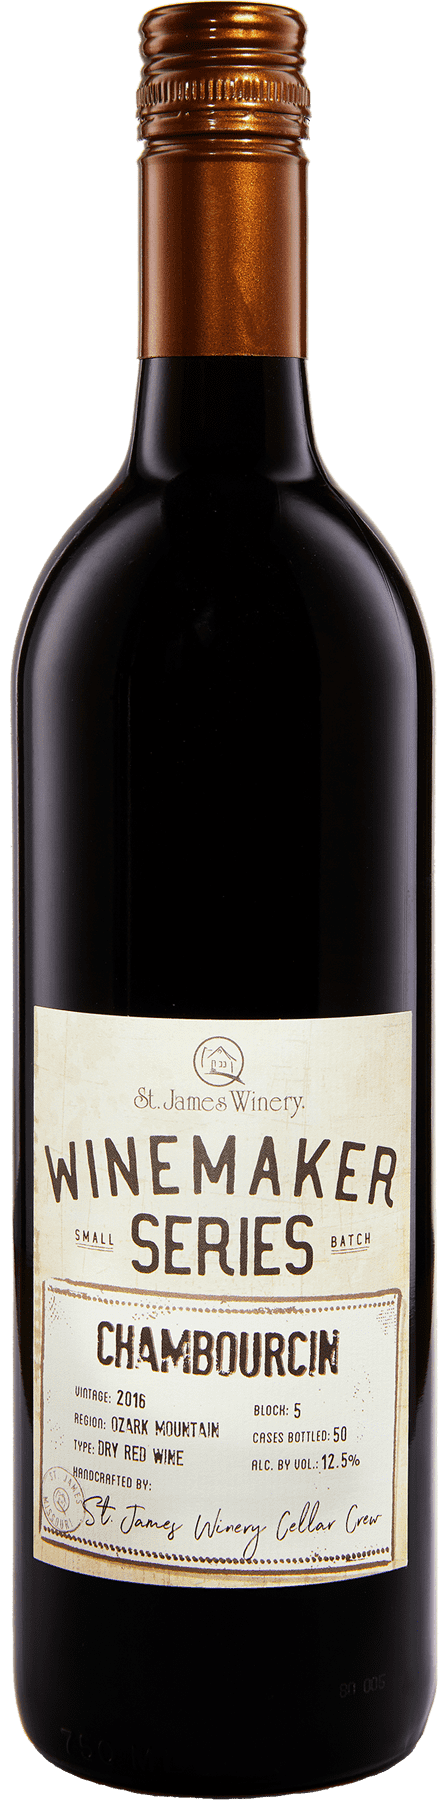 Chambourcin Winemaker Series Dry Red Wine - St. James Winery Missouri